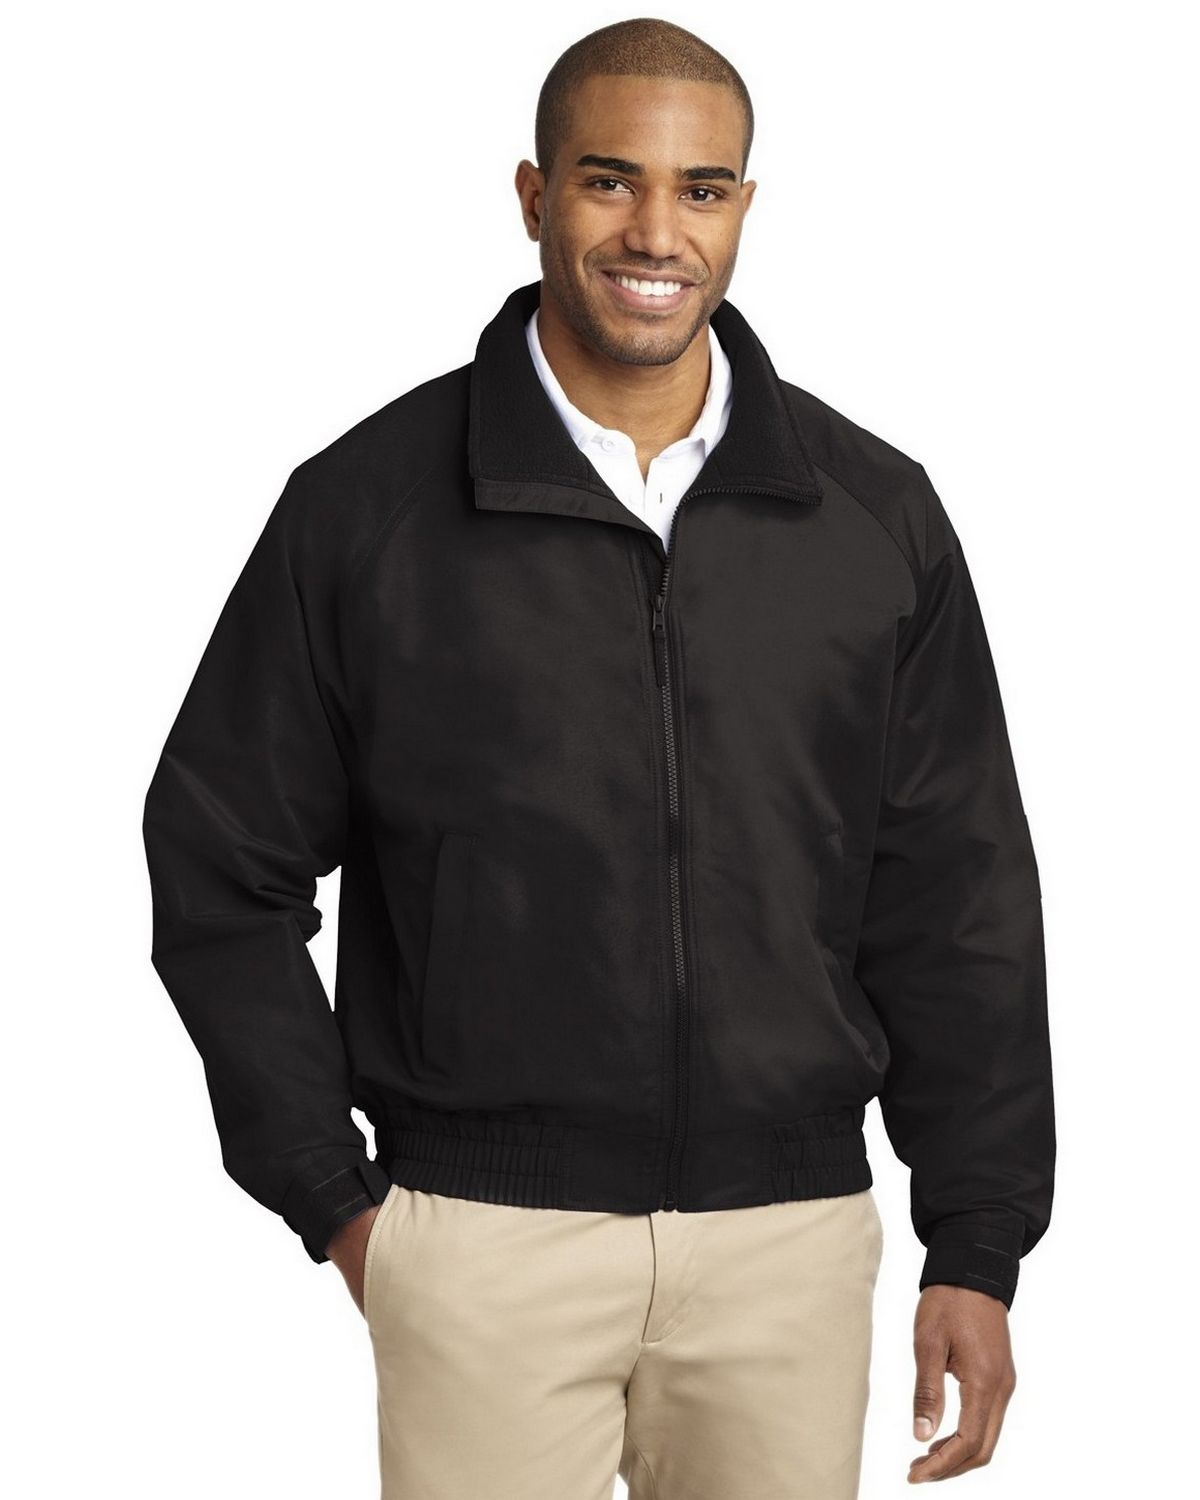 Port Authority J329 Lightweight Charger Jacket - True Black - M J329